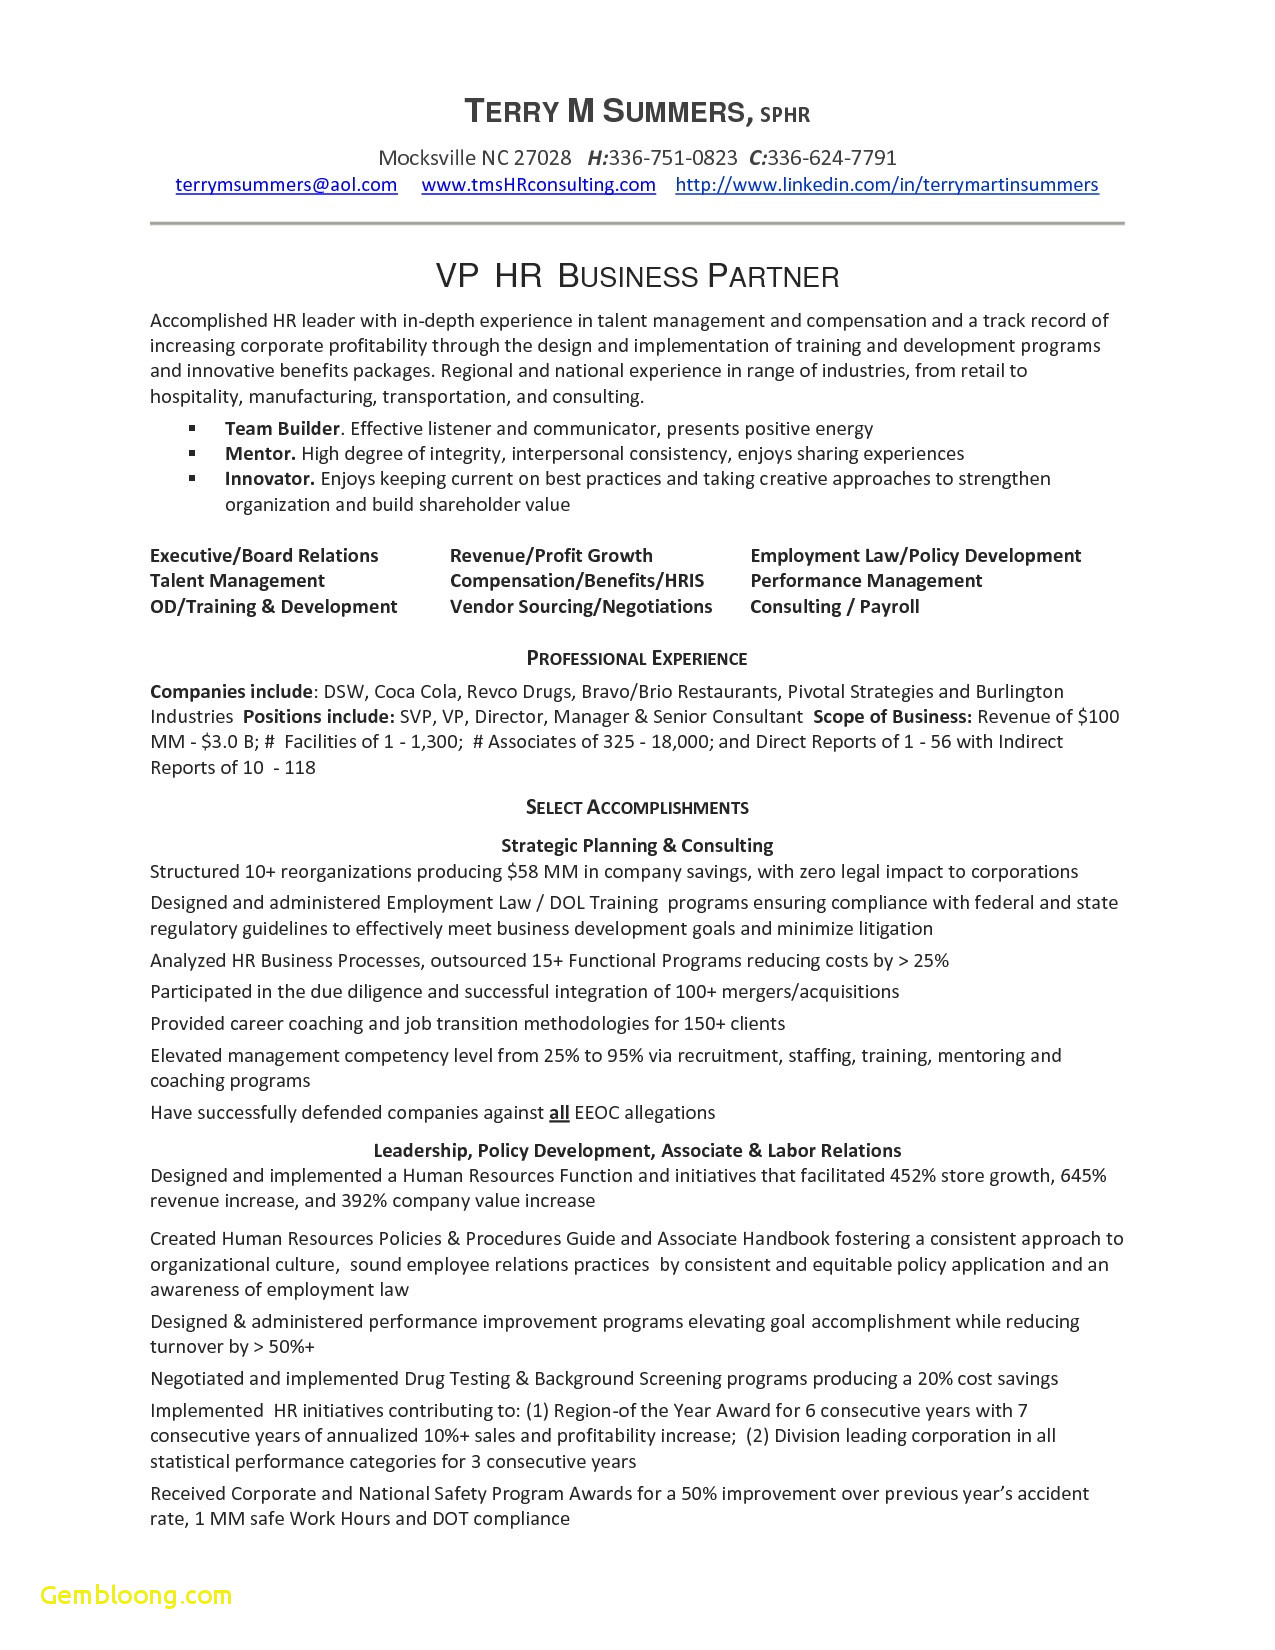 Insurance Marketing Letter Template - Human Resources Sample Resume Download Cover Letter Template Hr Copy